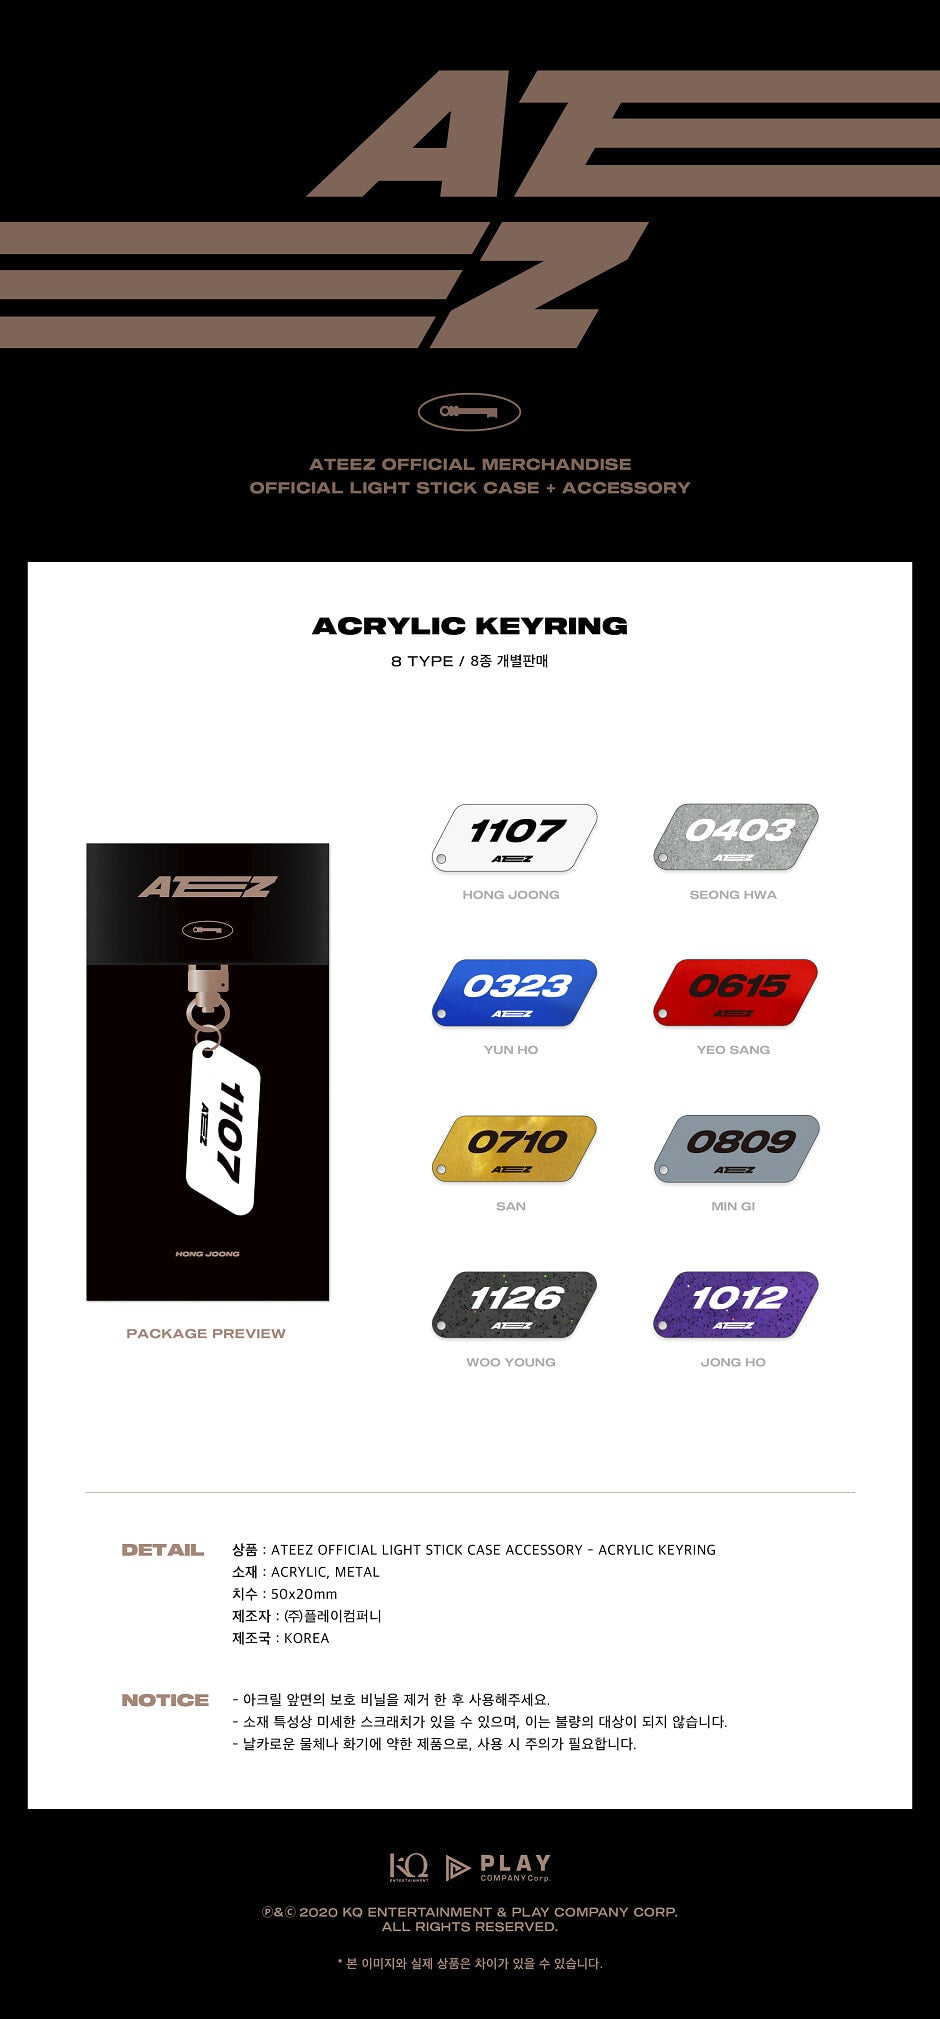 ATEEZ - Official Lightstick Case Accessory - Acrylic Keyring